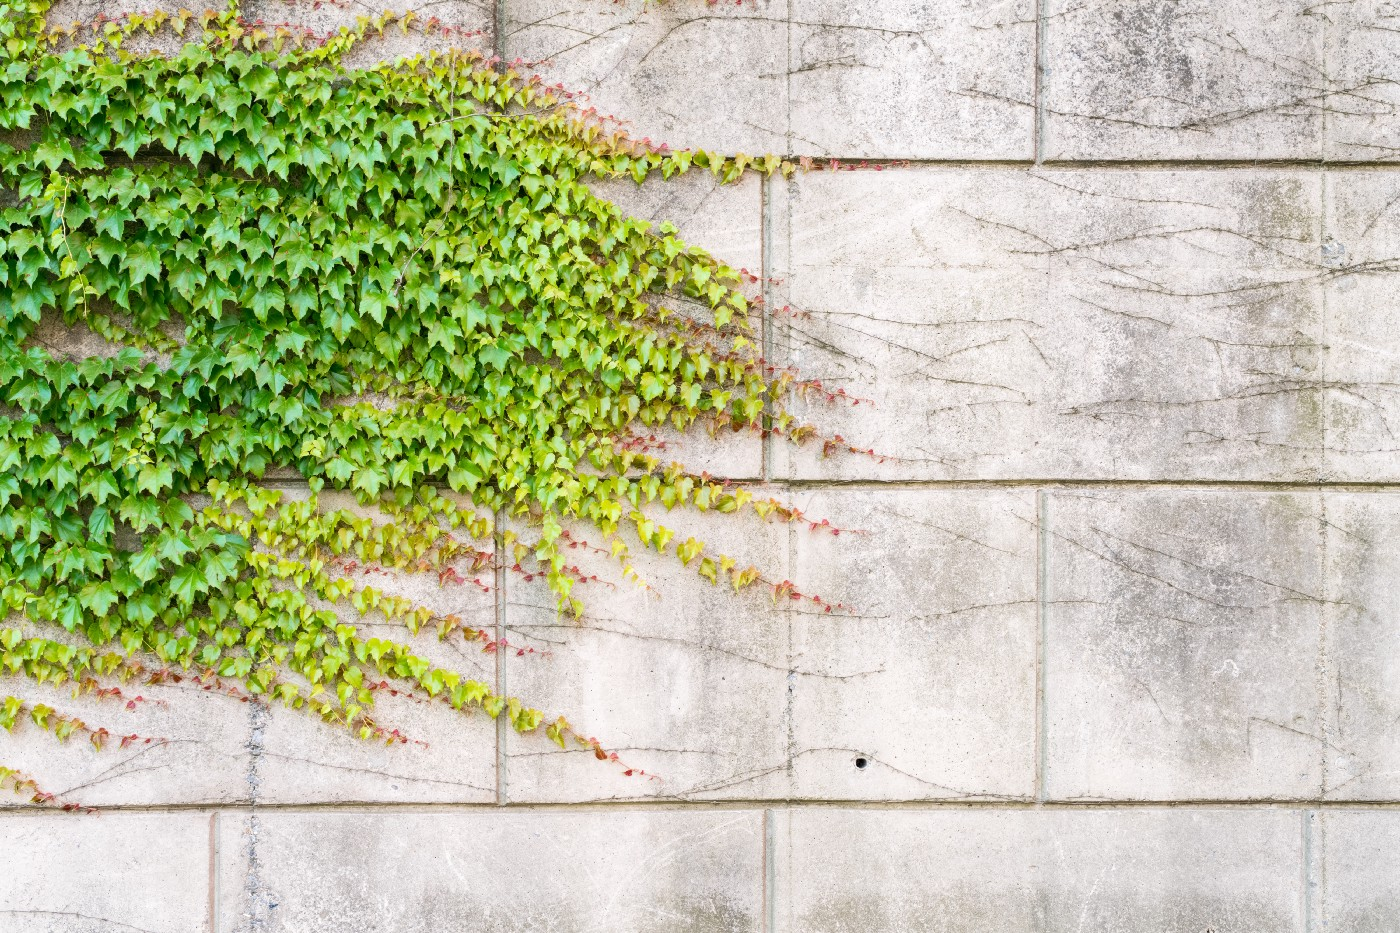 A stone wall with a creeping vine.